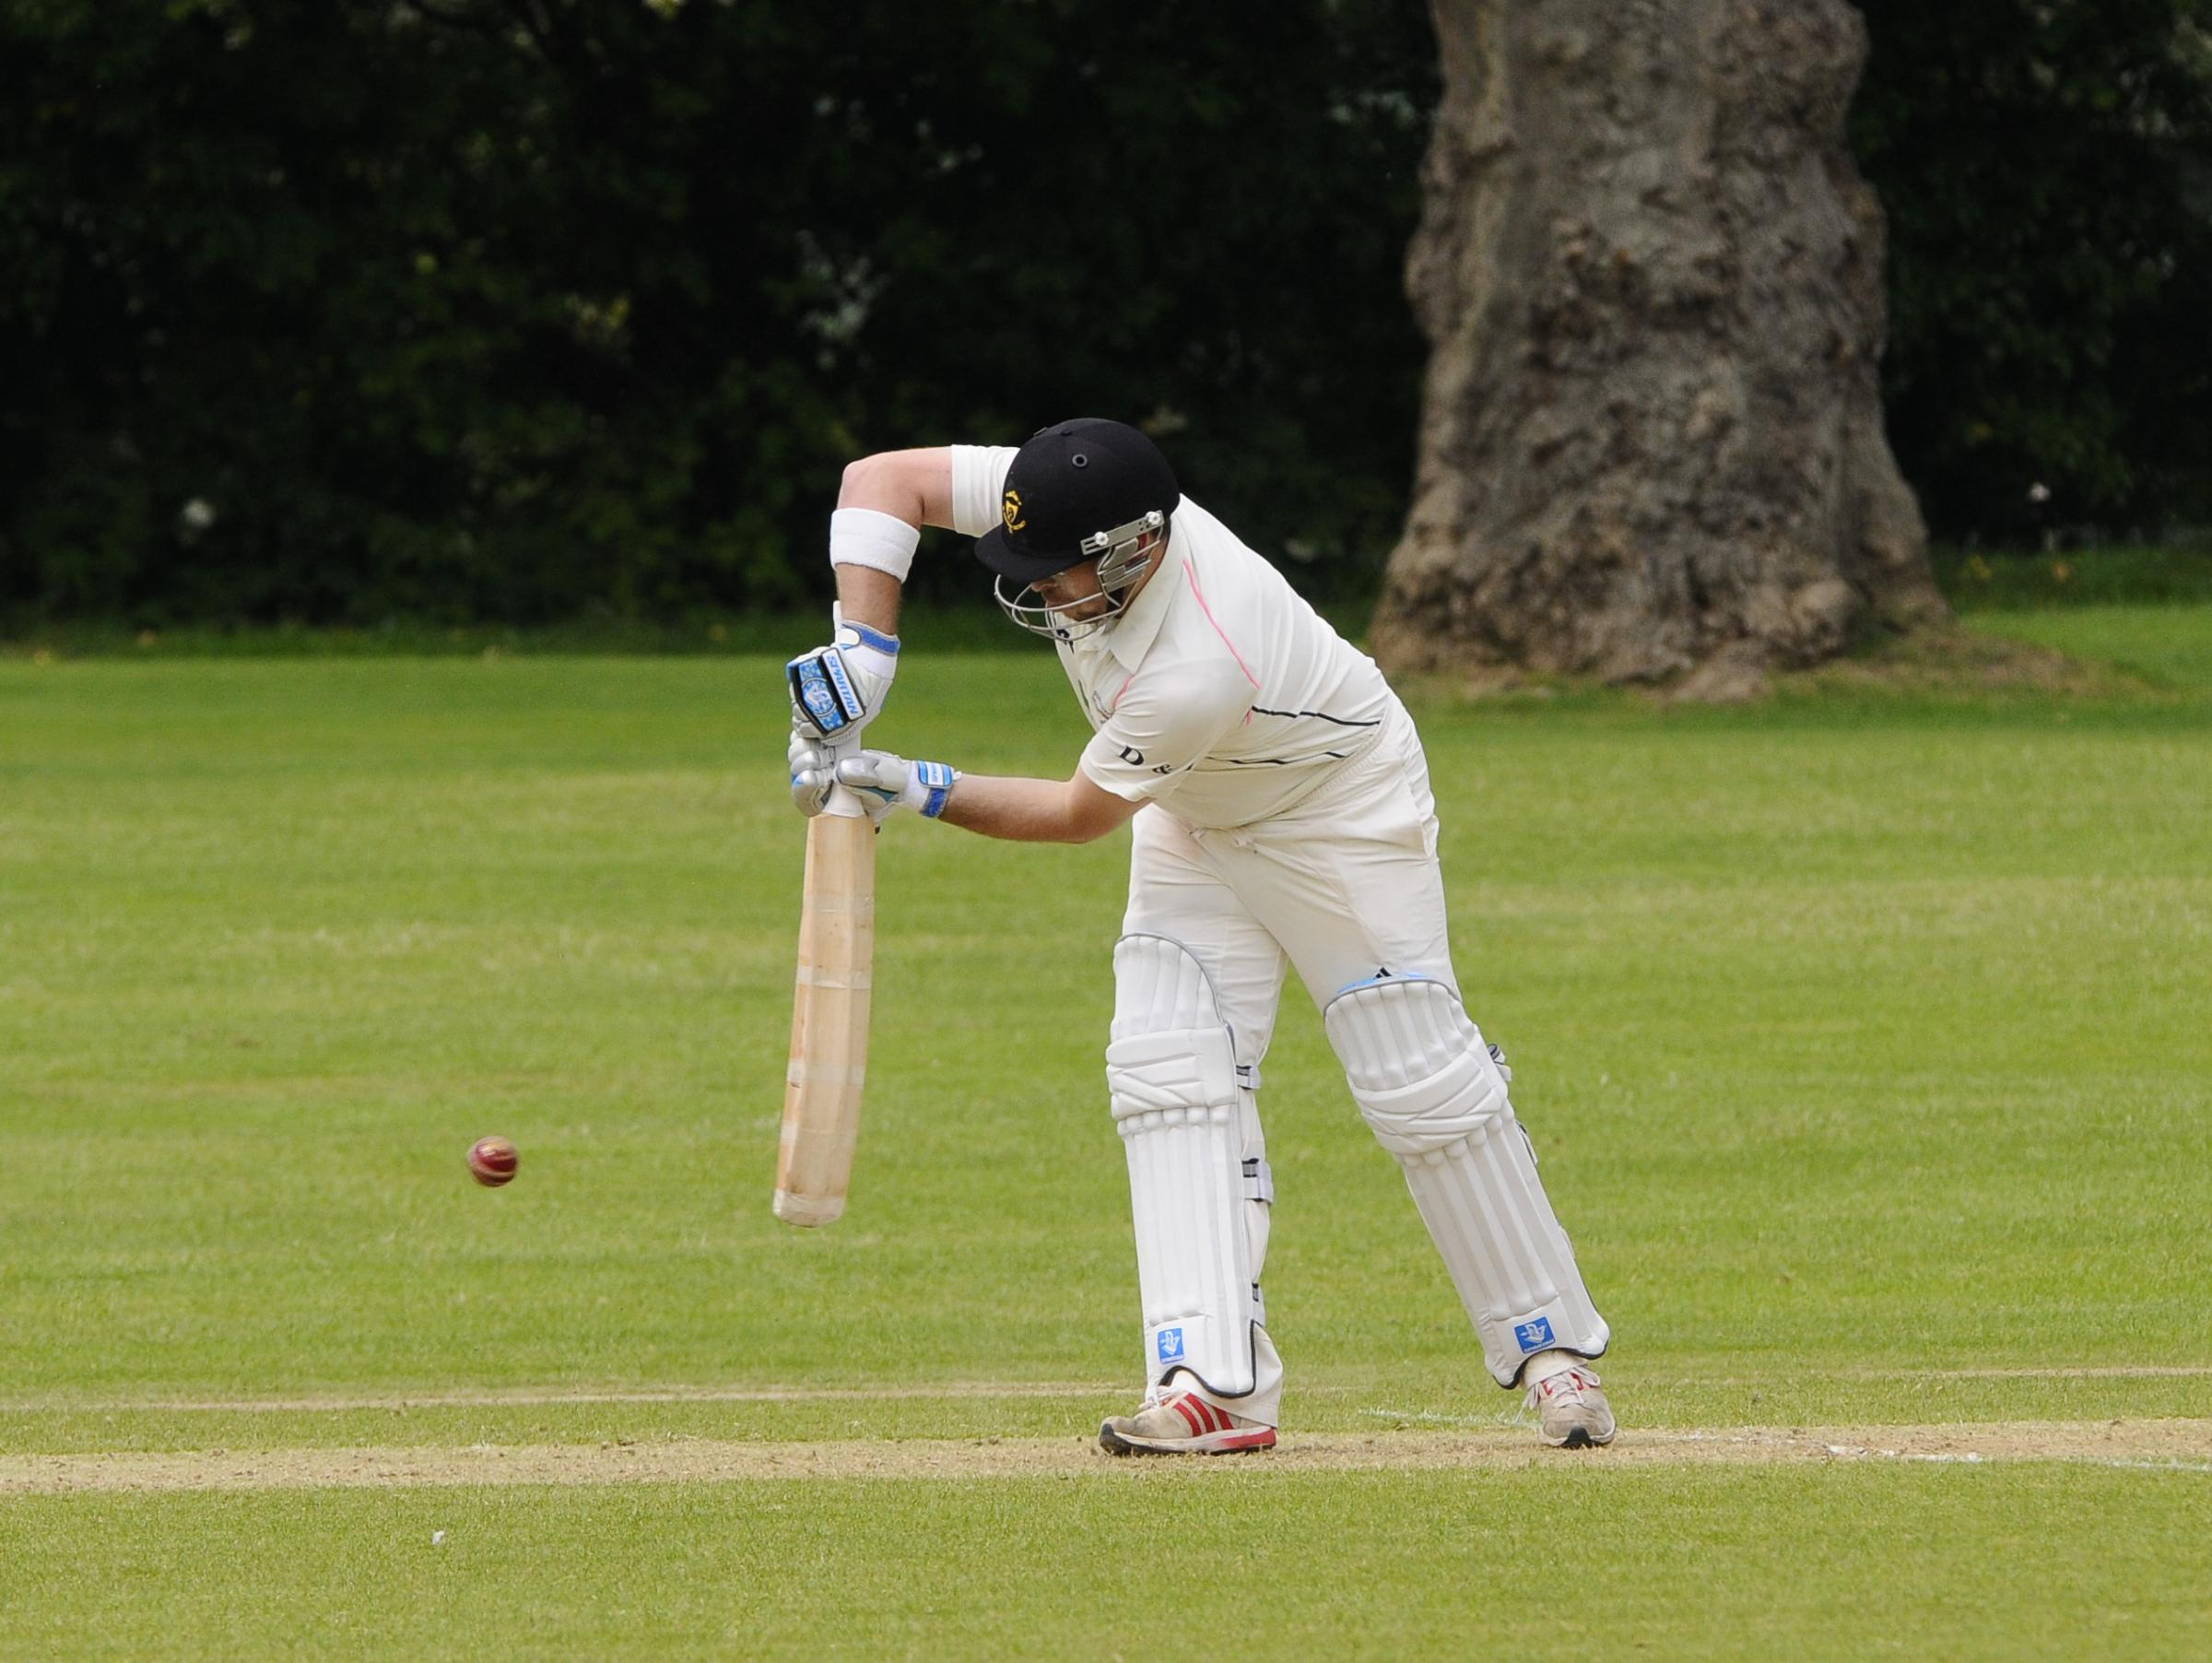 Dan Stickels hit 32 runs in Hartley's victory over Bromley